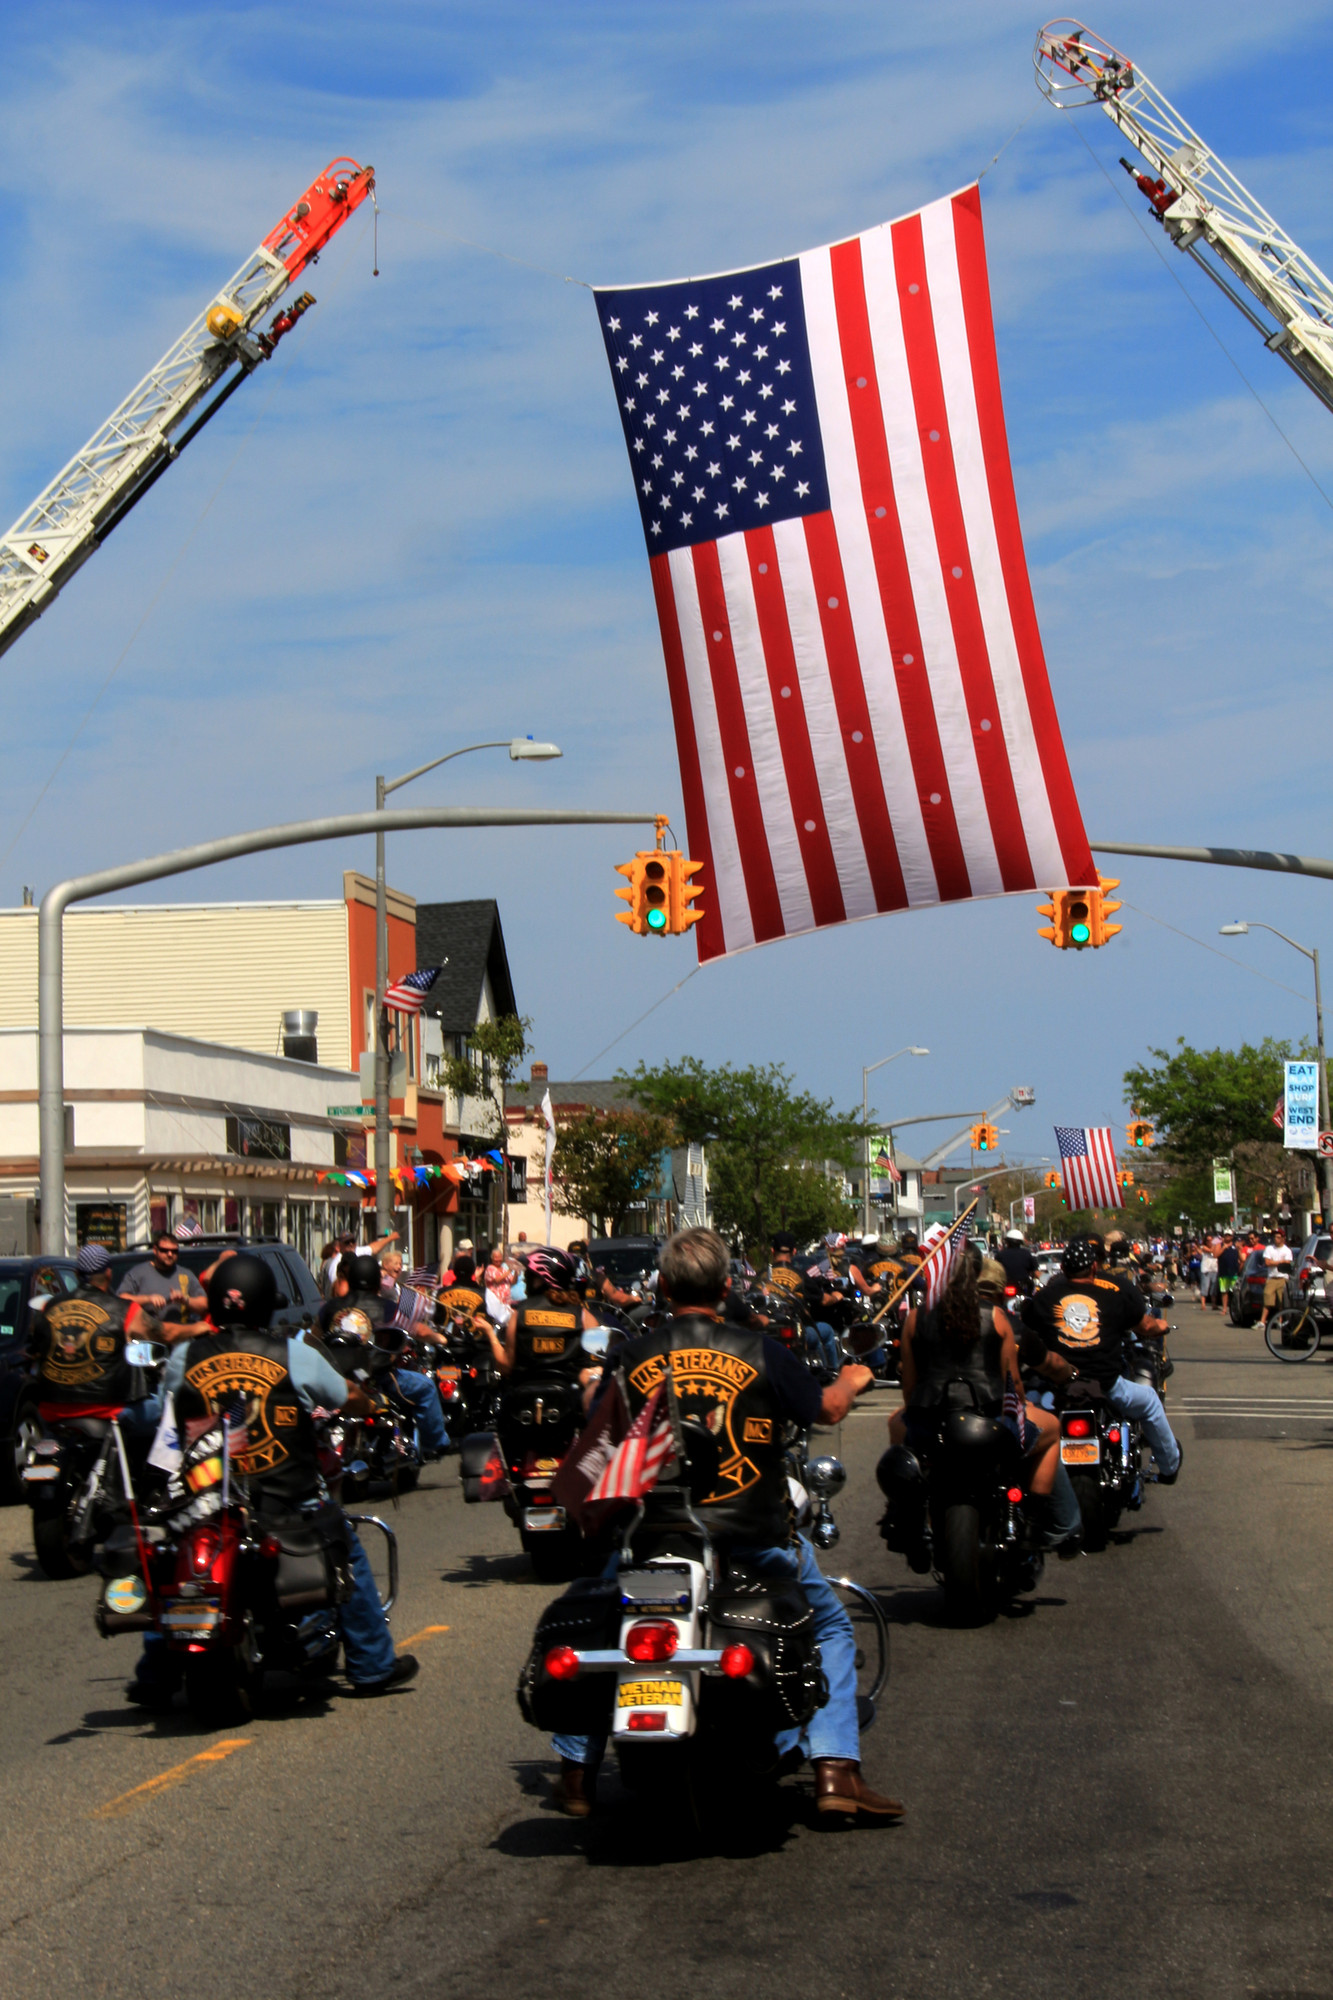 The U.S. Veterans Motorcycle Club in the parade down West Beech Street.